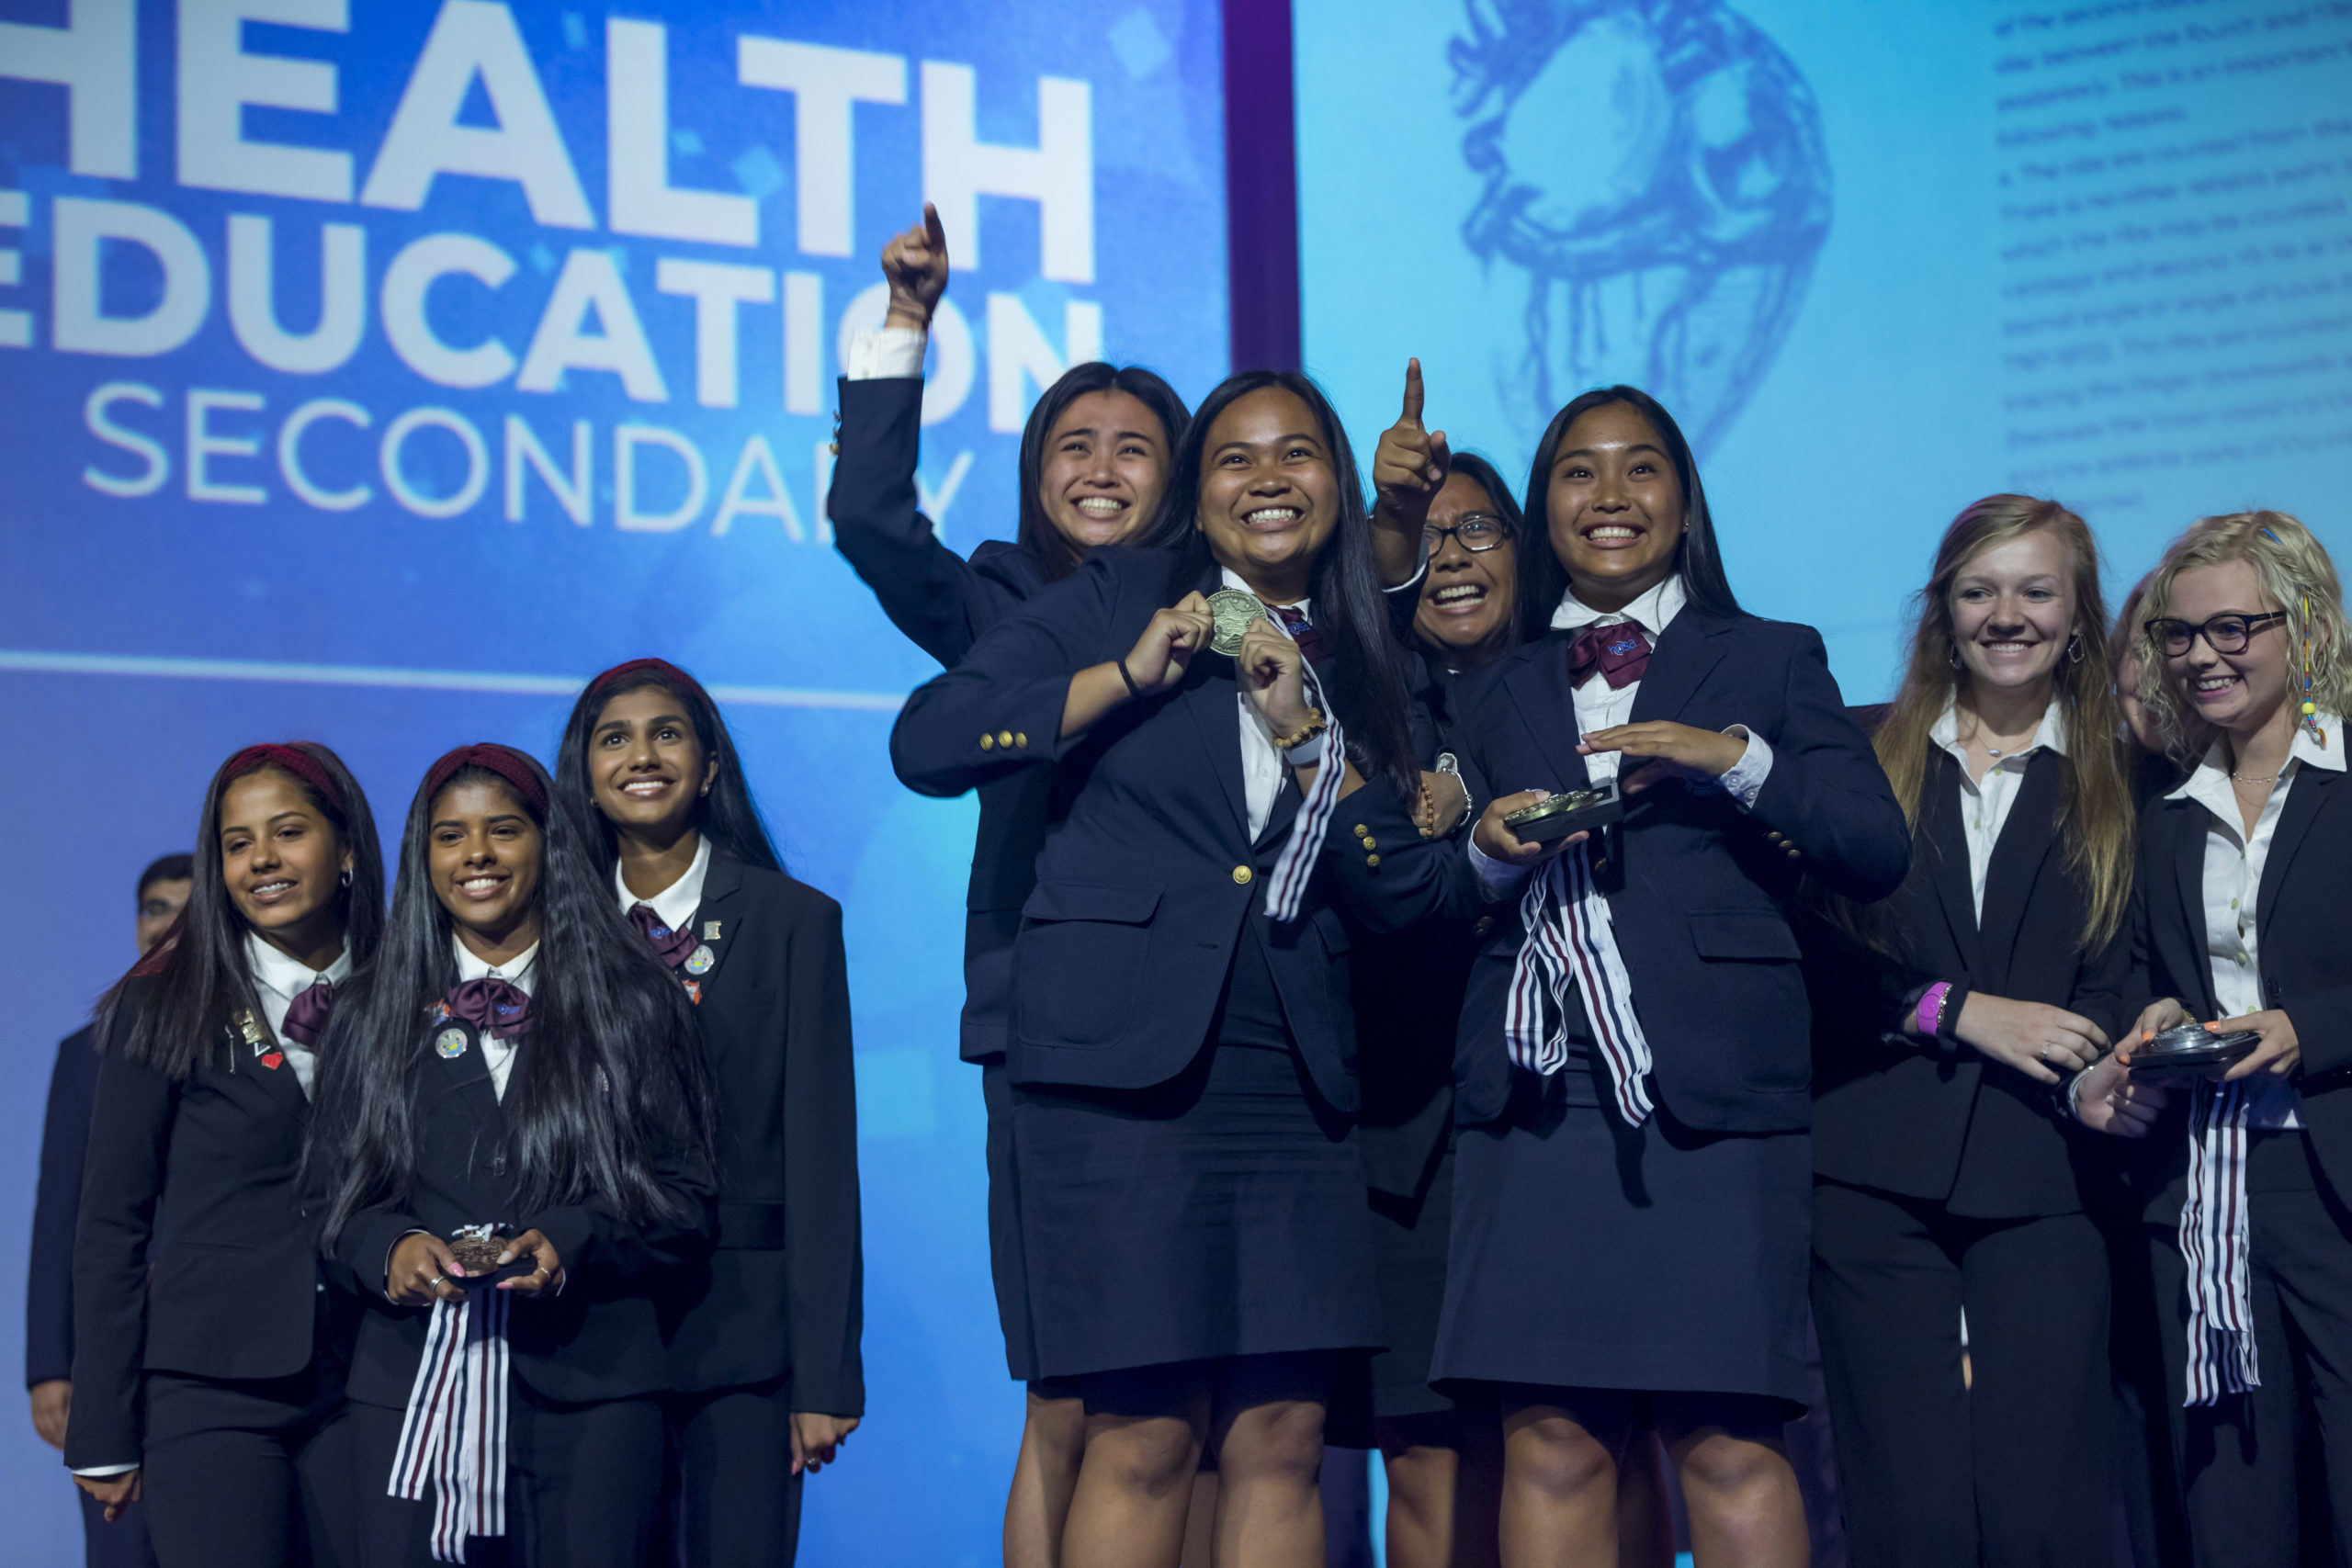 HOSA's Annual Event of the Year goes VIRTUAL – announcing the HOSA 2021 Virtual International Leadership Conference, June 23-26!